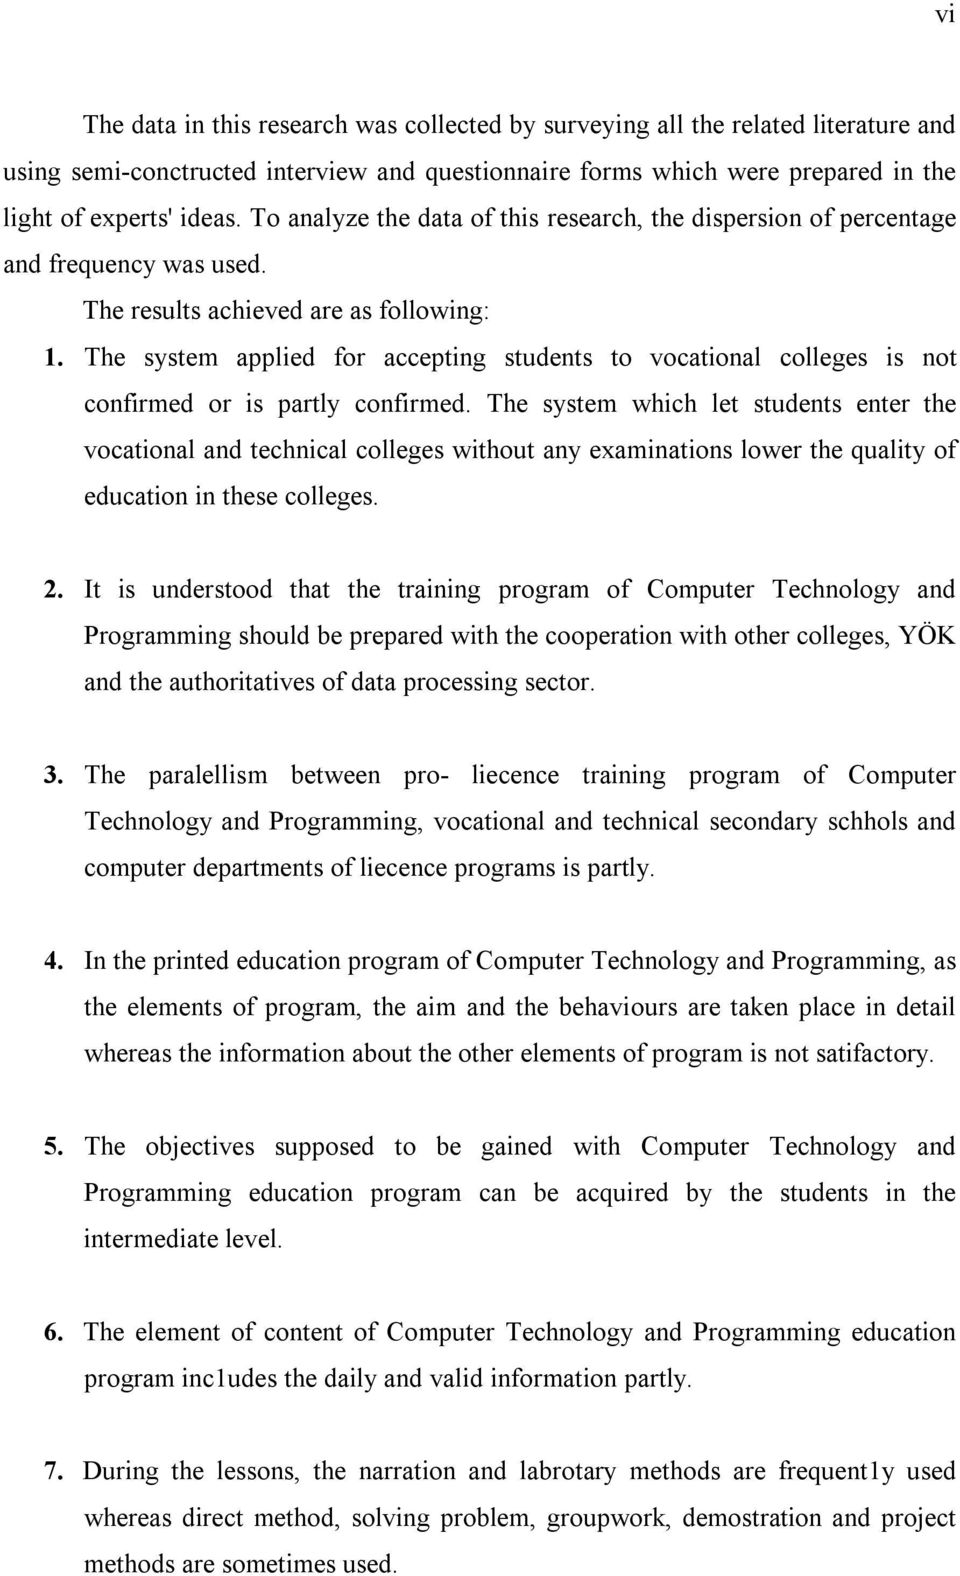 The system applied for accepting students to vocational colleges is not confirmed or is partly confirmed.